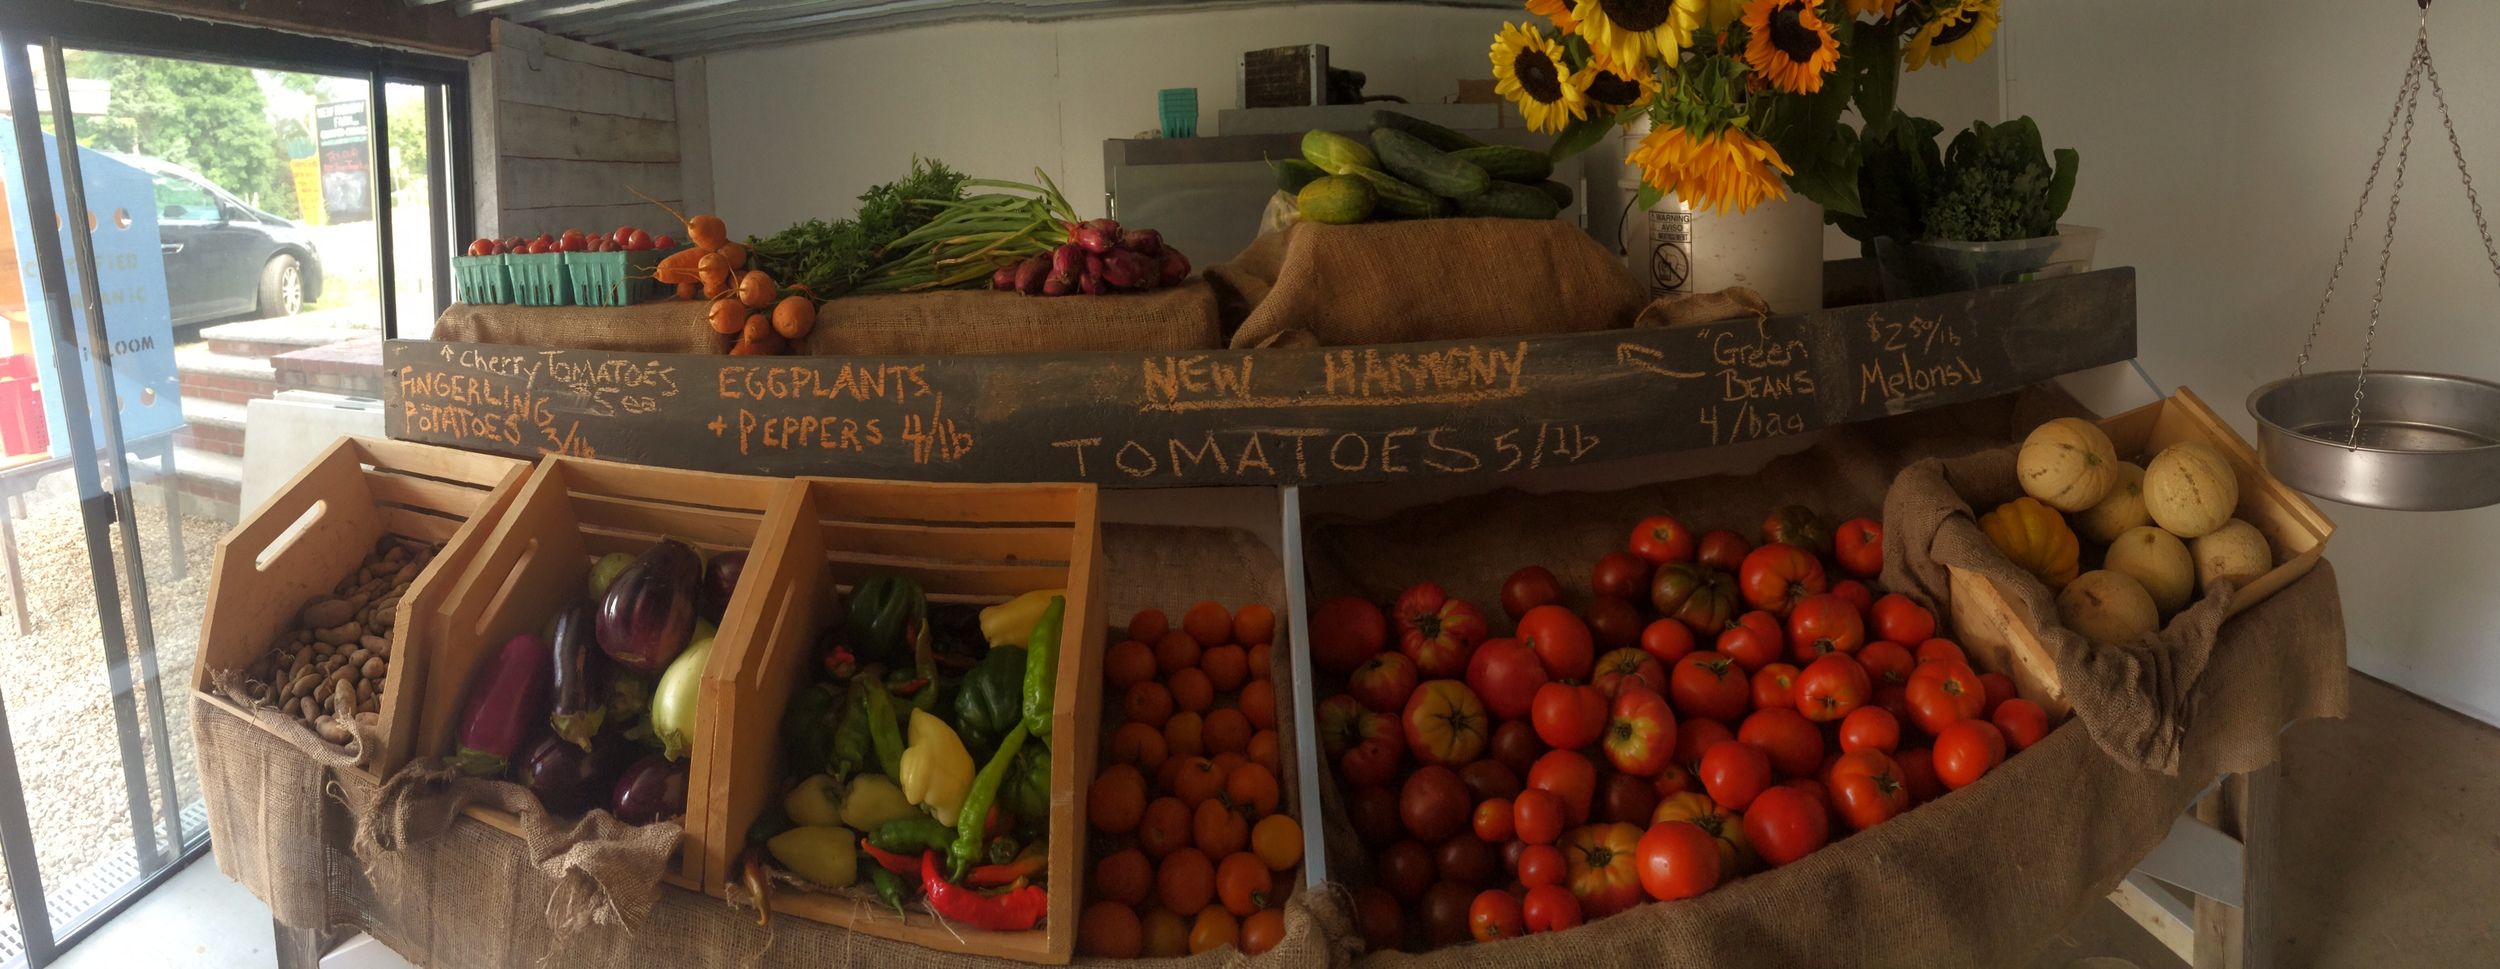 My Daughter Izzy's Panoramic Photo of Our Newly Built Produce Table